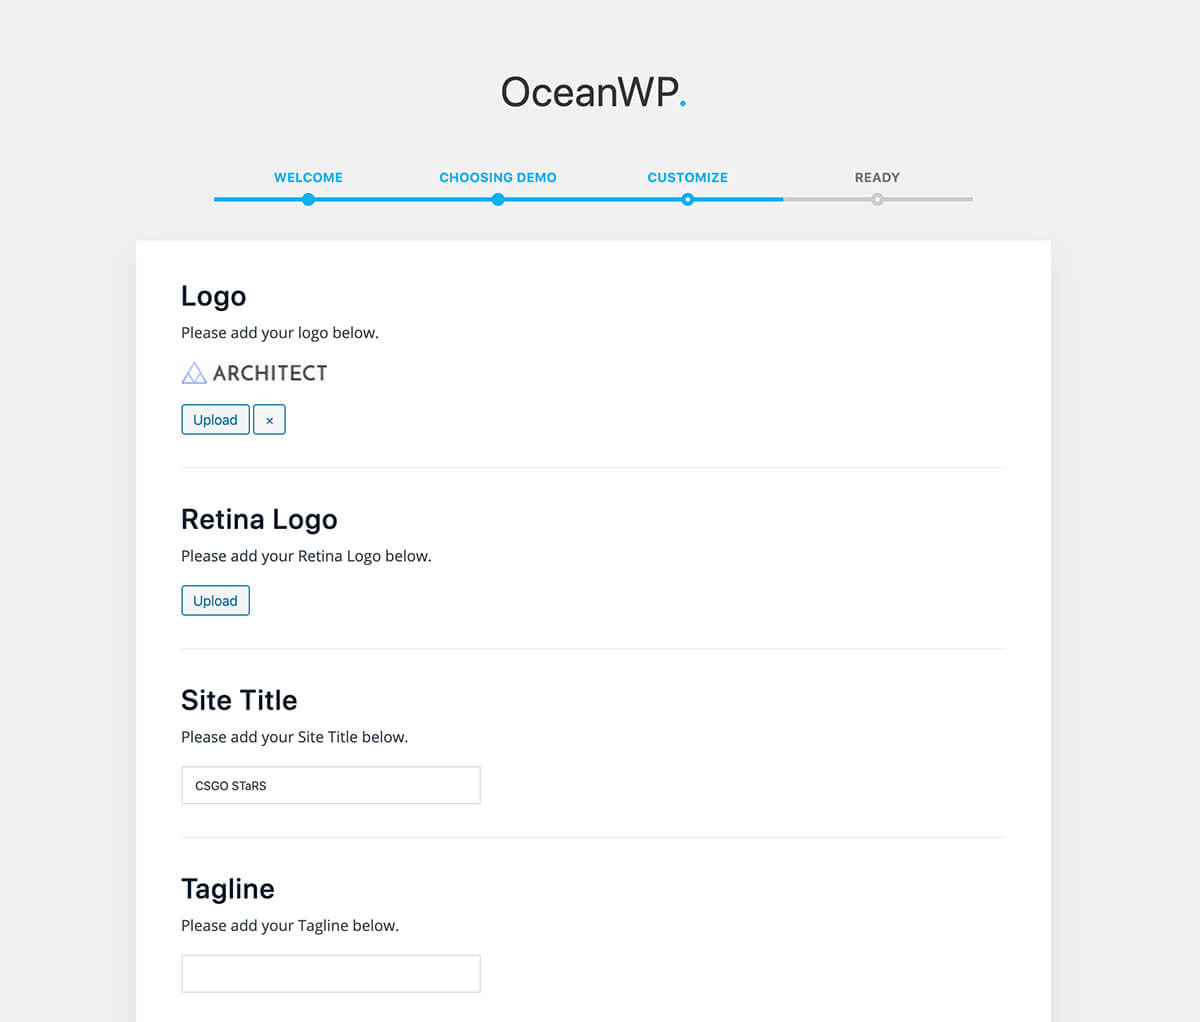 OceanWP basic customization